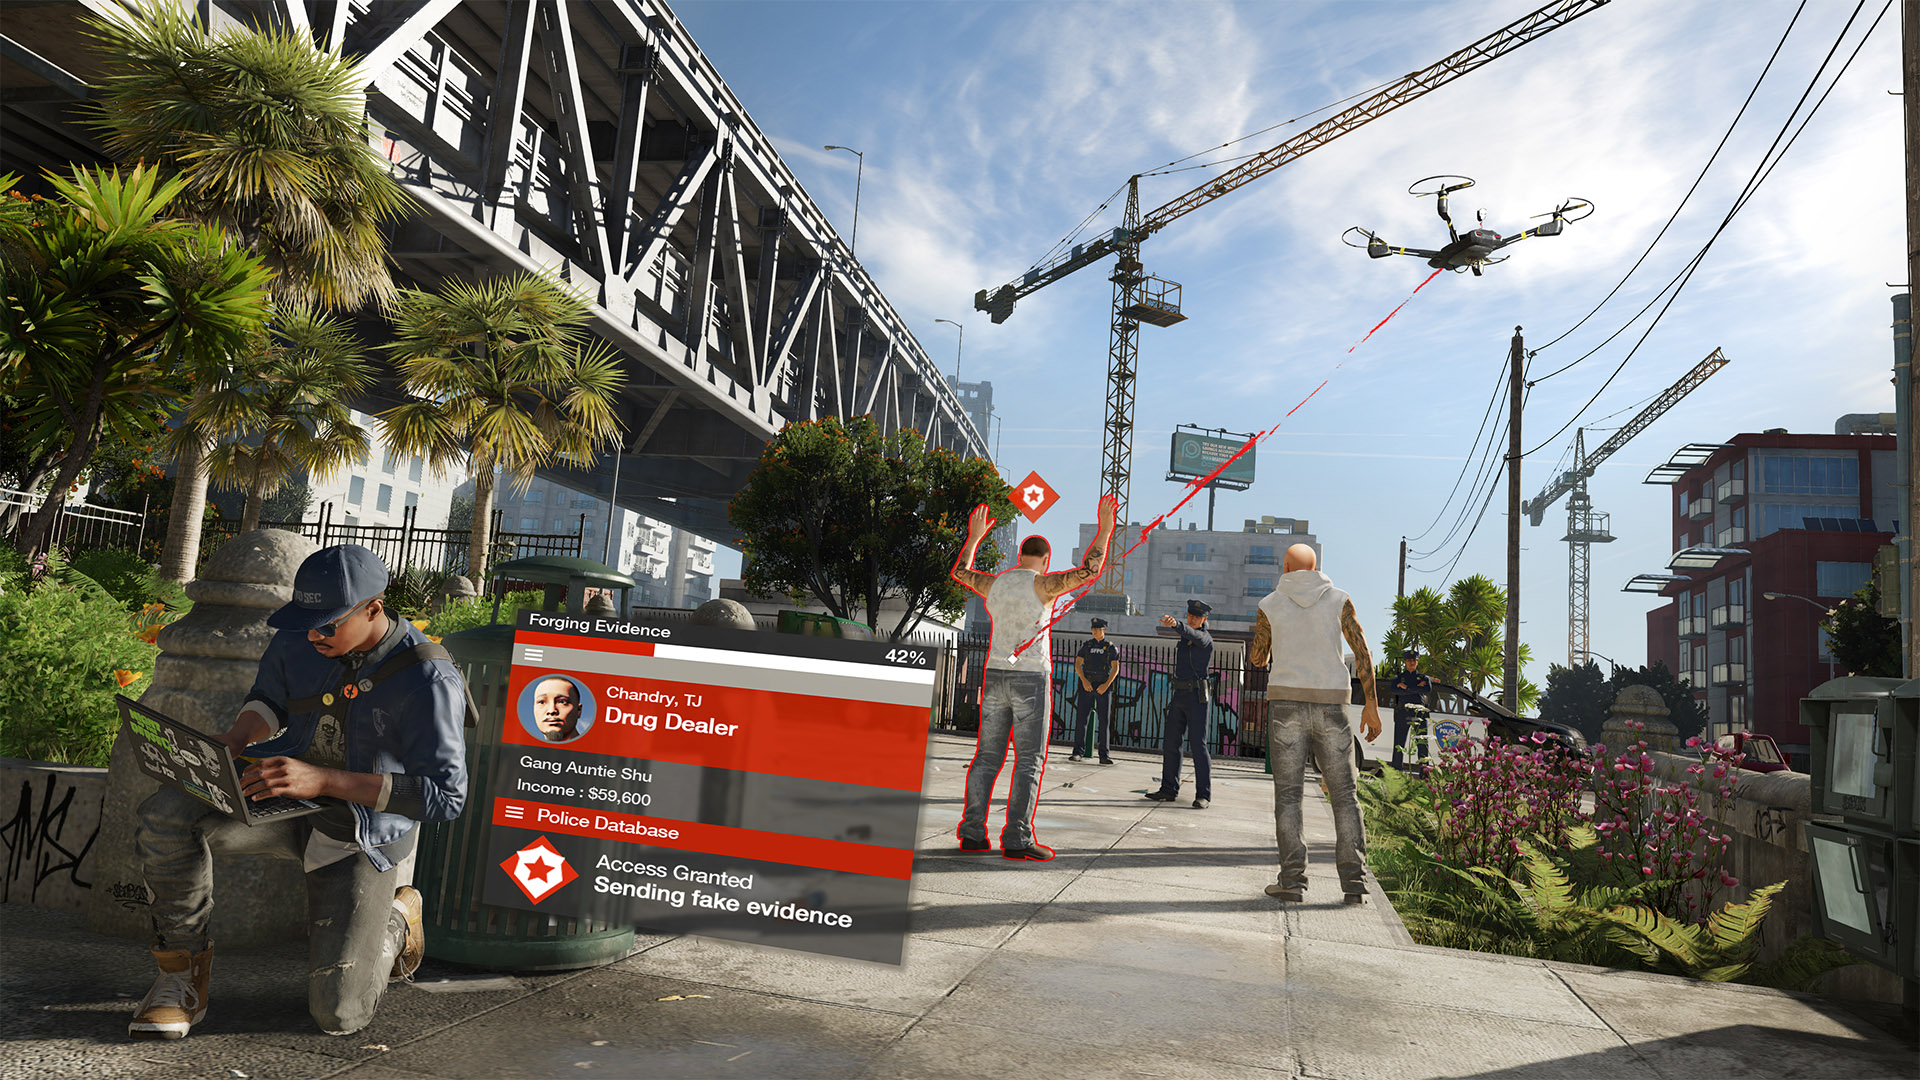 The PC version of Watch Dogs 2 shows gains of 20% or more when comparing a 4-thread CPU to an 8-thread CPU